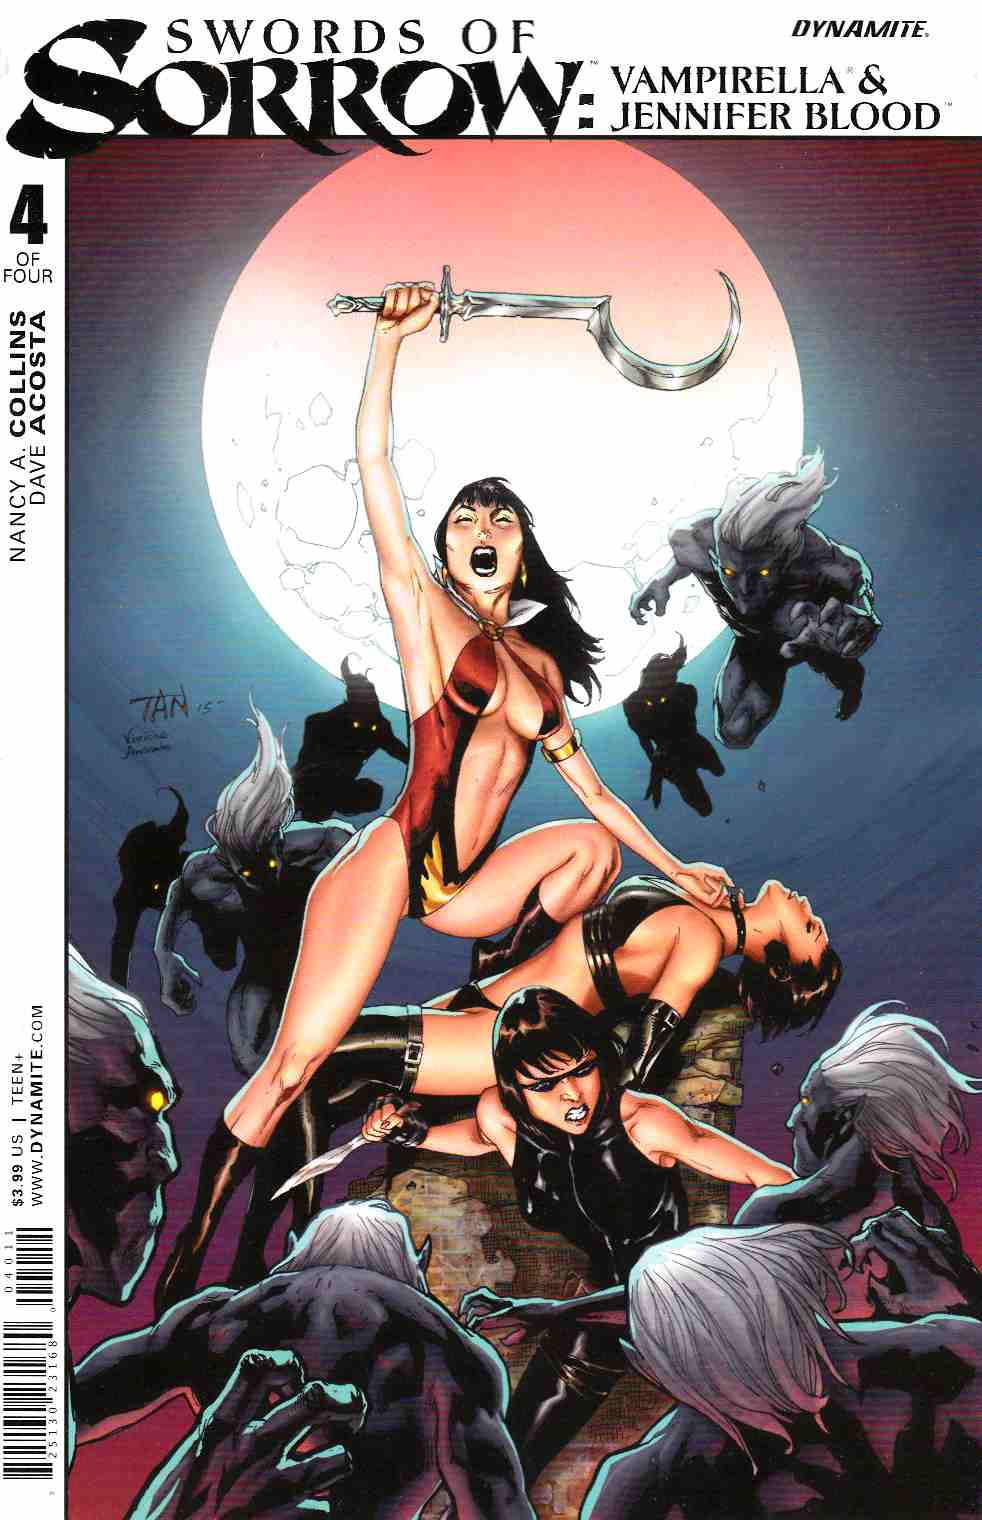 Swords of Sorrow Vampirella Jennifer Blood #4 [Dynamite Comic]